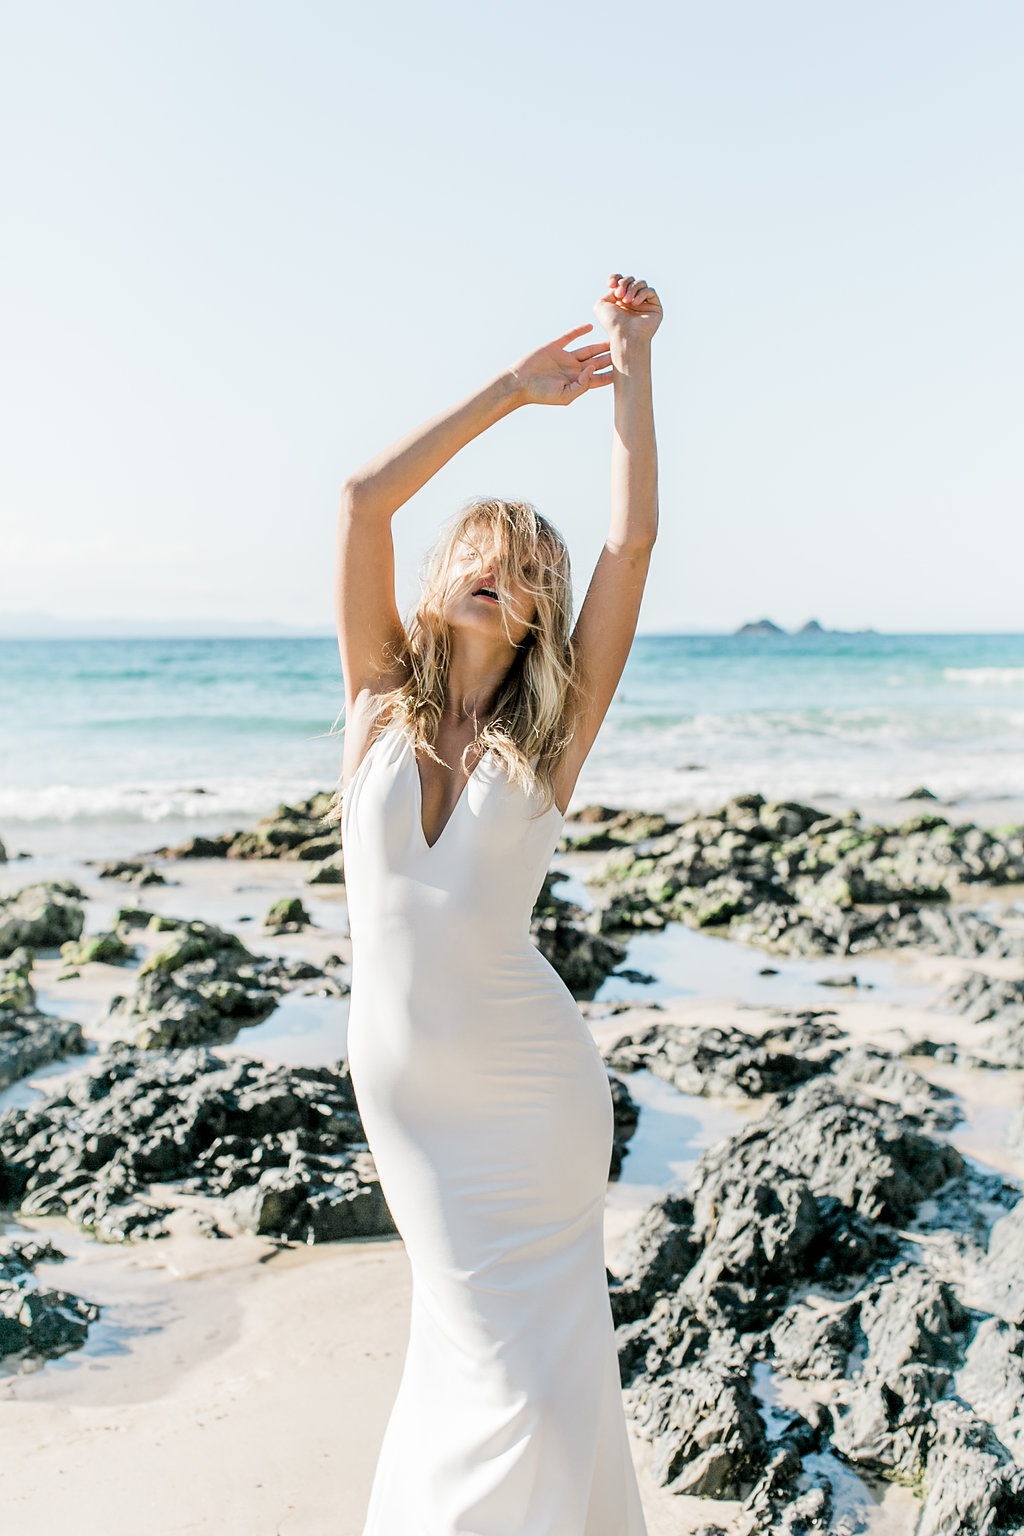 The Georgie Wedding Dress by Made With Love Bridal featured on LOVE FIND CO.